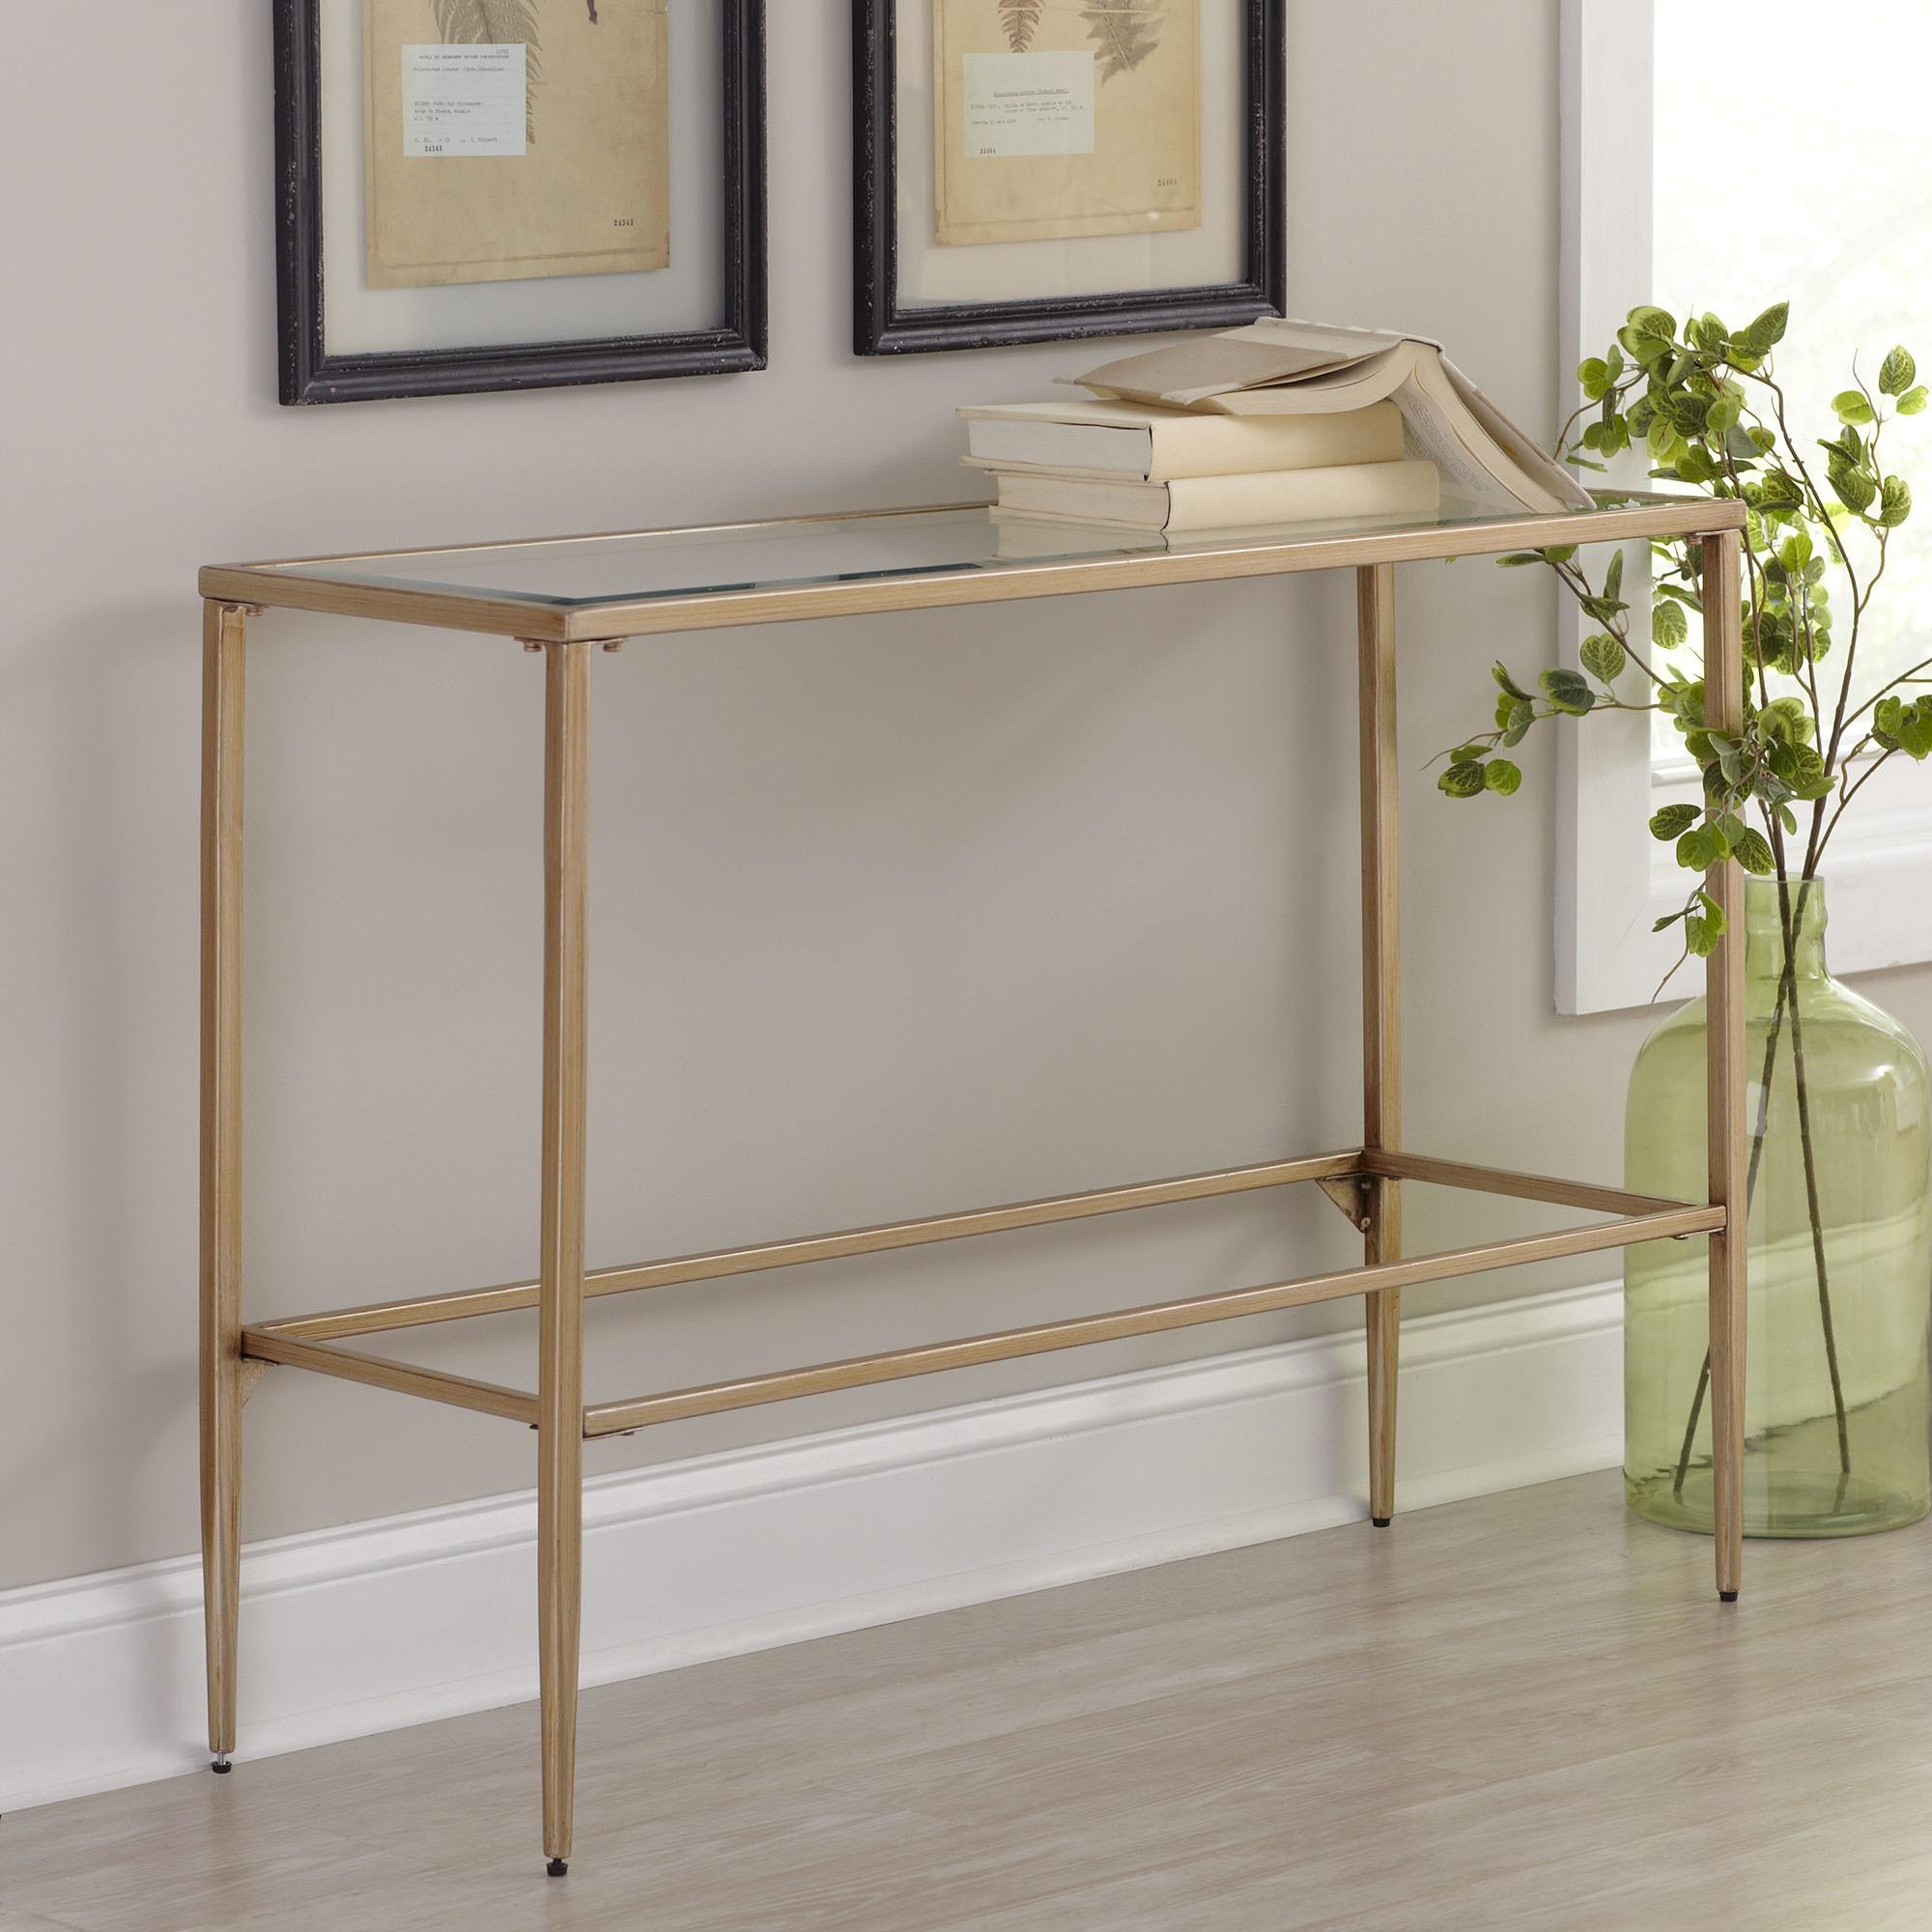 Gold Sofa Table With Design Image 8673 | Kengire intended for Gold Sofa Tables